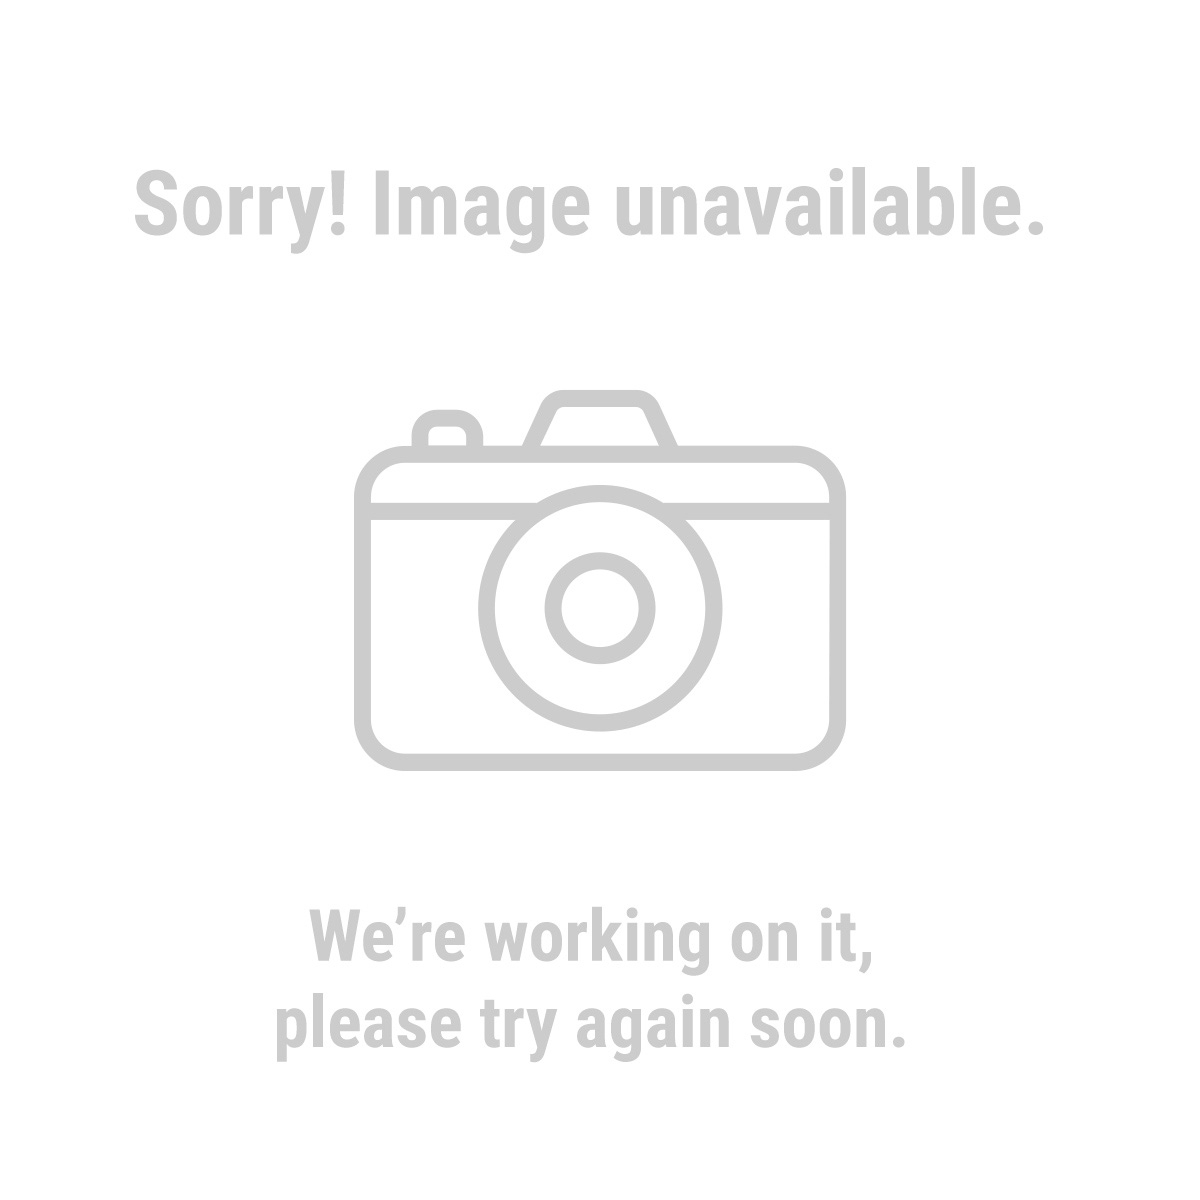 40134 135 dB Super-Loud Air Horn